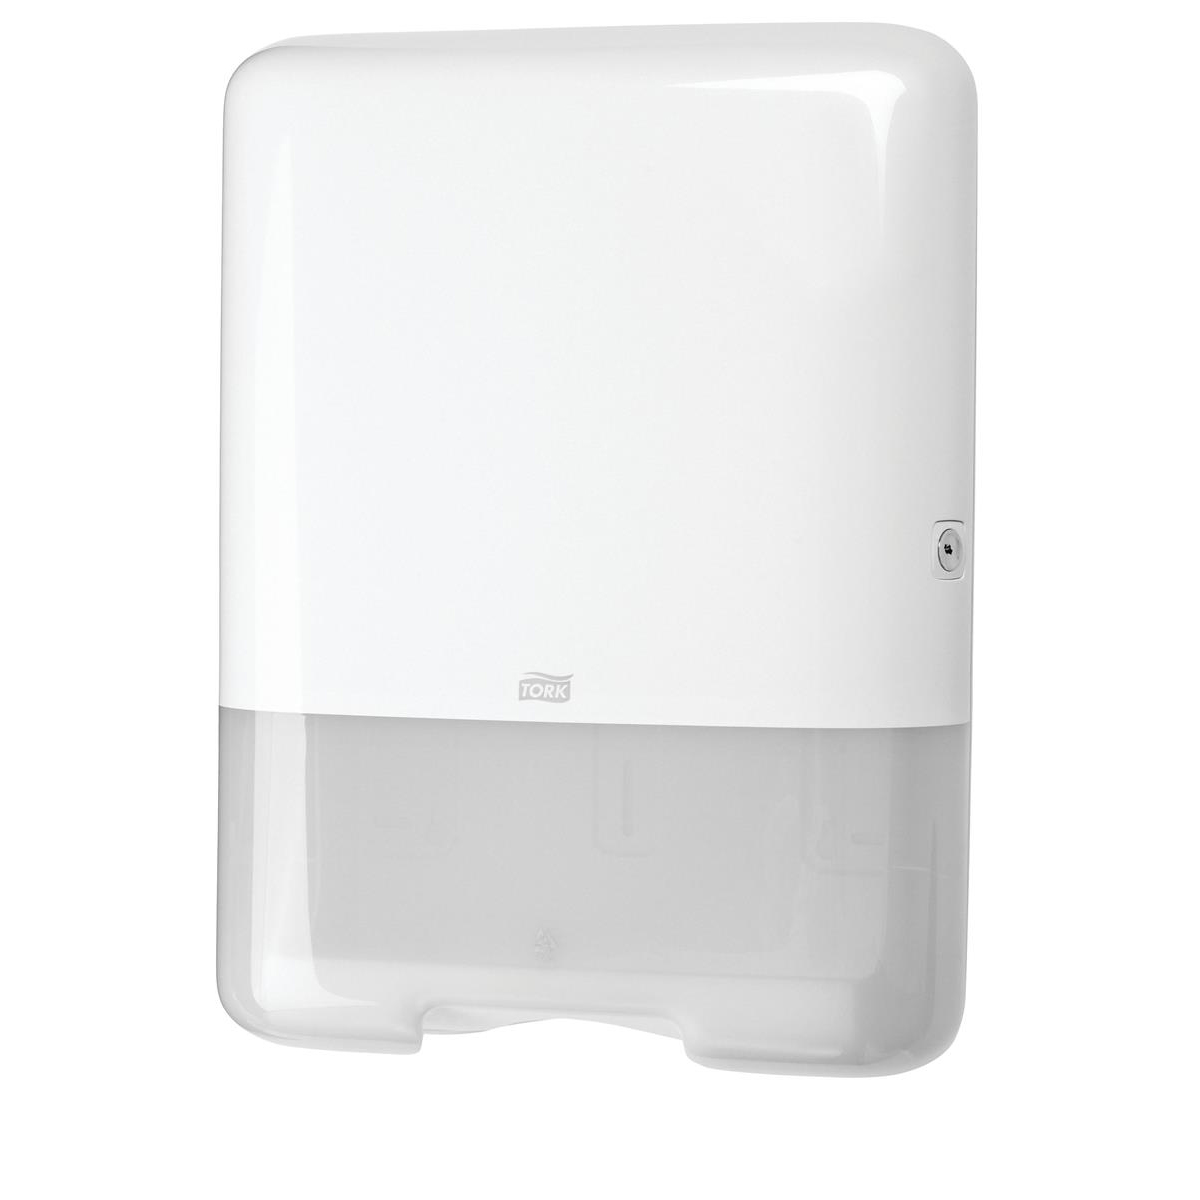 Hand Towels & Dispensers Tork Single Fold C Fold Hand Towel Dispenser W333xD136xH439mm Plastic White Ref 553000